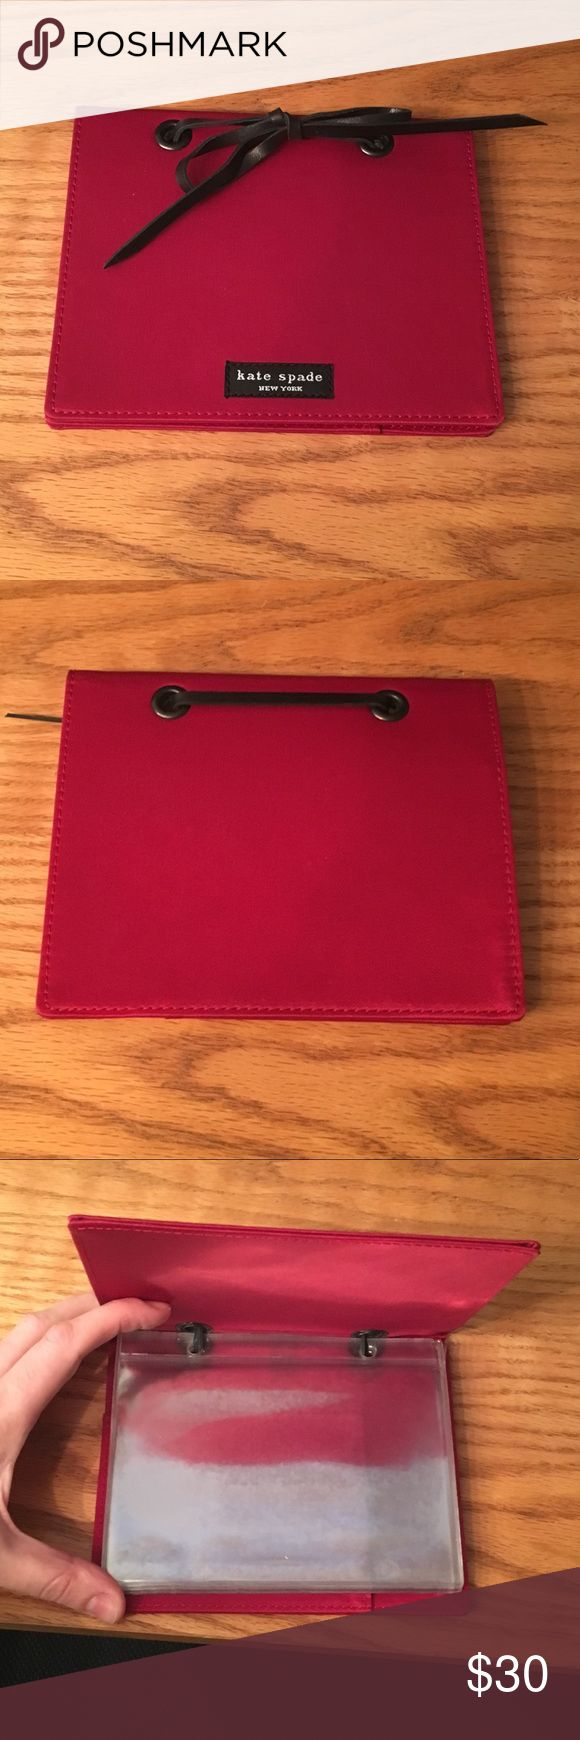 Kate Spade Photo Album NWOT. Cranberry colored nylon photo album with black leather tie. Has 8 clear plastic sleeves that hold 16 4x6 photos. Small pocket located inside of back cover. kate spade Accessories #photoalbum